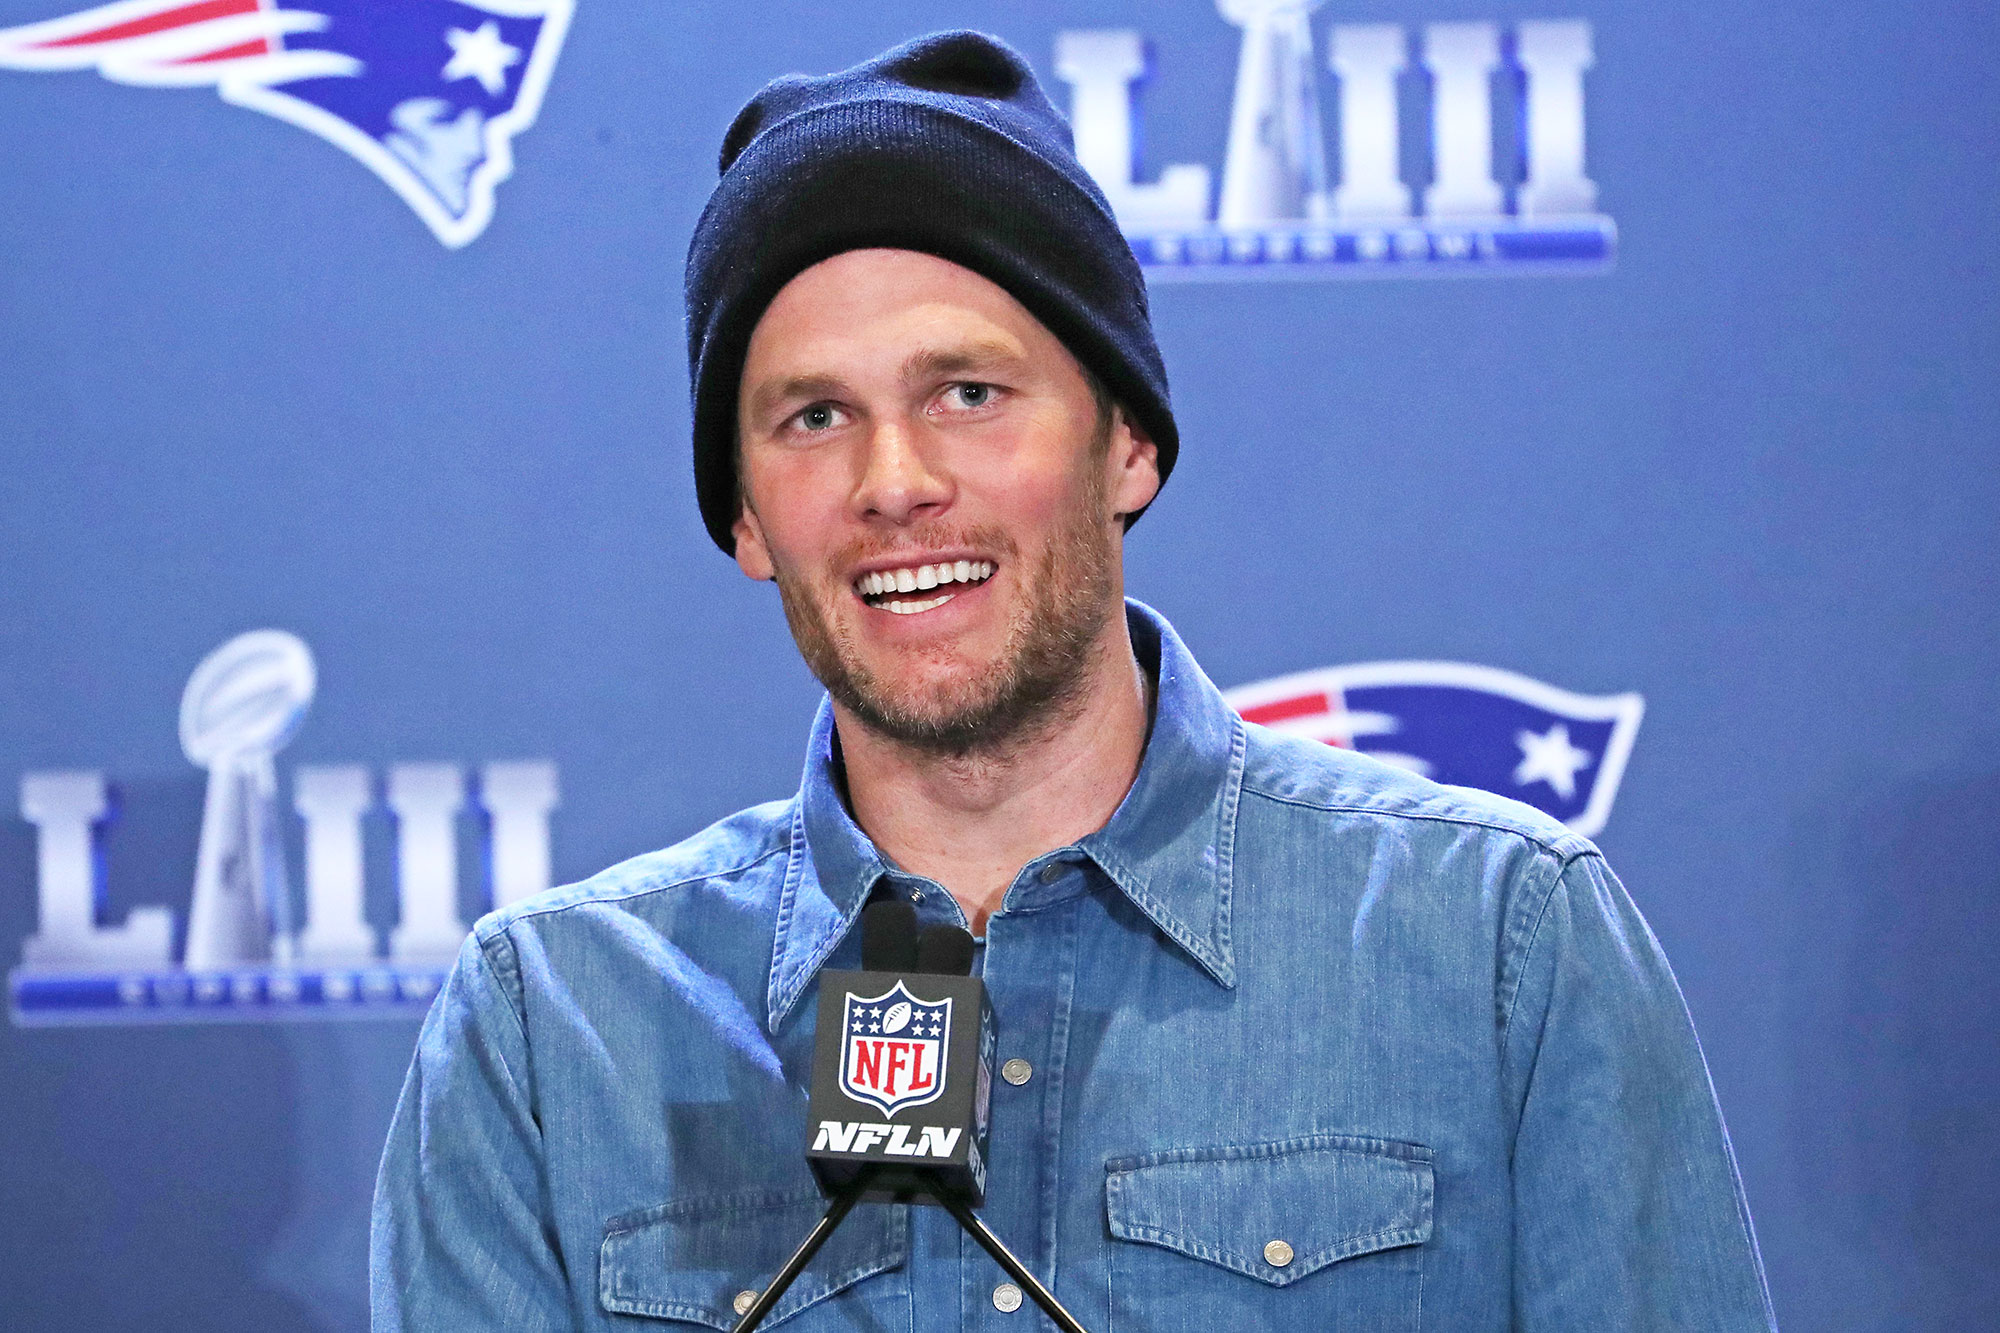 Tom Brady Officially Signs With Tampa Bay Buccaneers After New England Patriots Exit